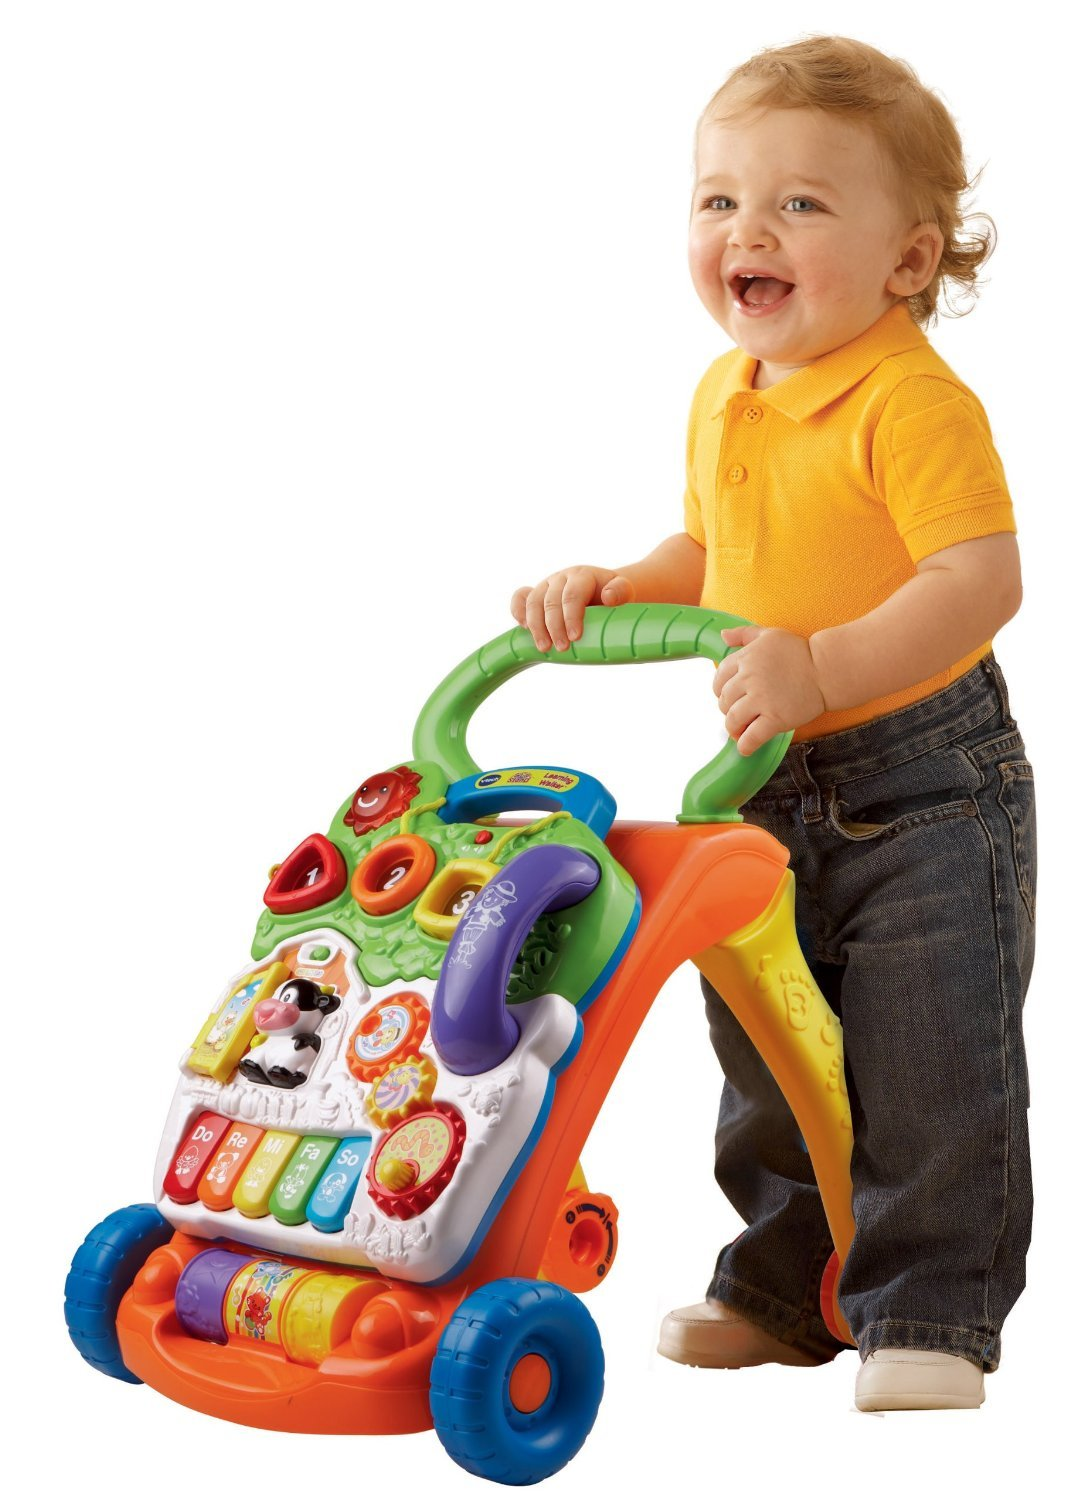 Boikido Wooden 2-in-1 WalkerRide-on